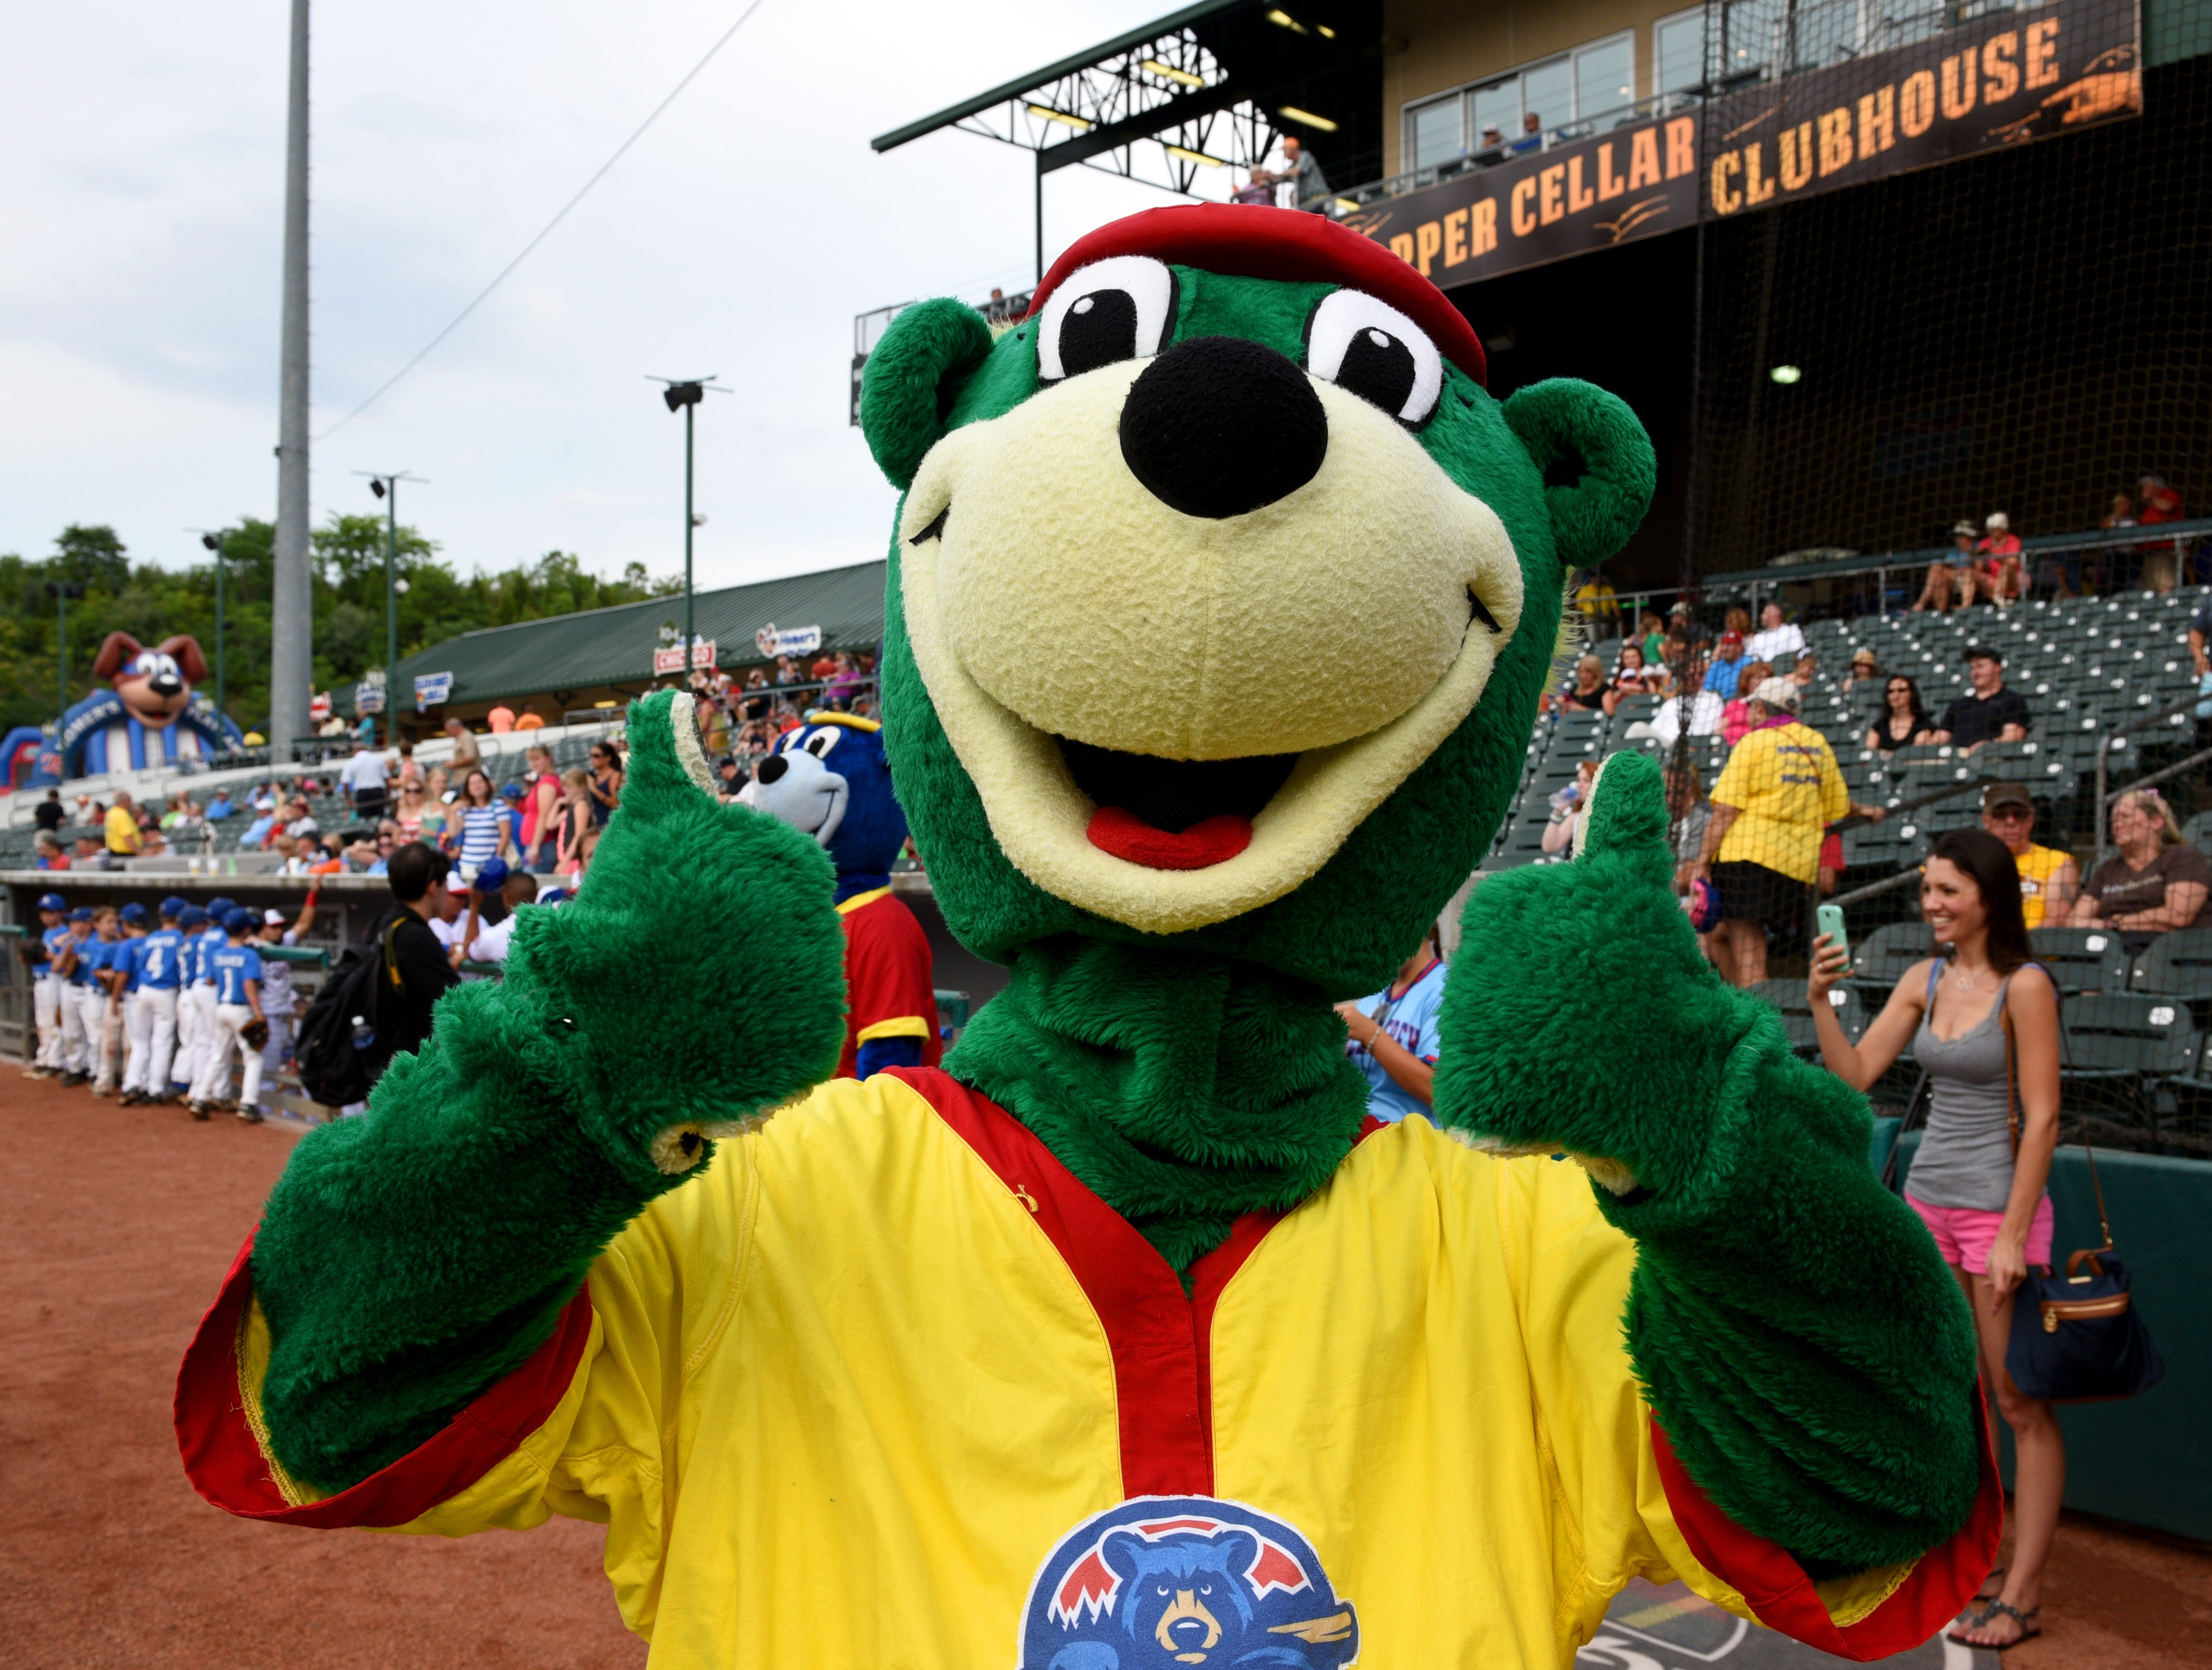 Tennessee Smokies baseball game against the Mississippi Braves televised by CBS Sports Network Thursday, Jun. 18, 2015. Helen Turner, co-founder of the Love Kitchen throwing out the first pitch and money raised at the game goes to the Love Kitchen.